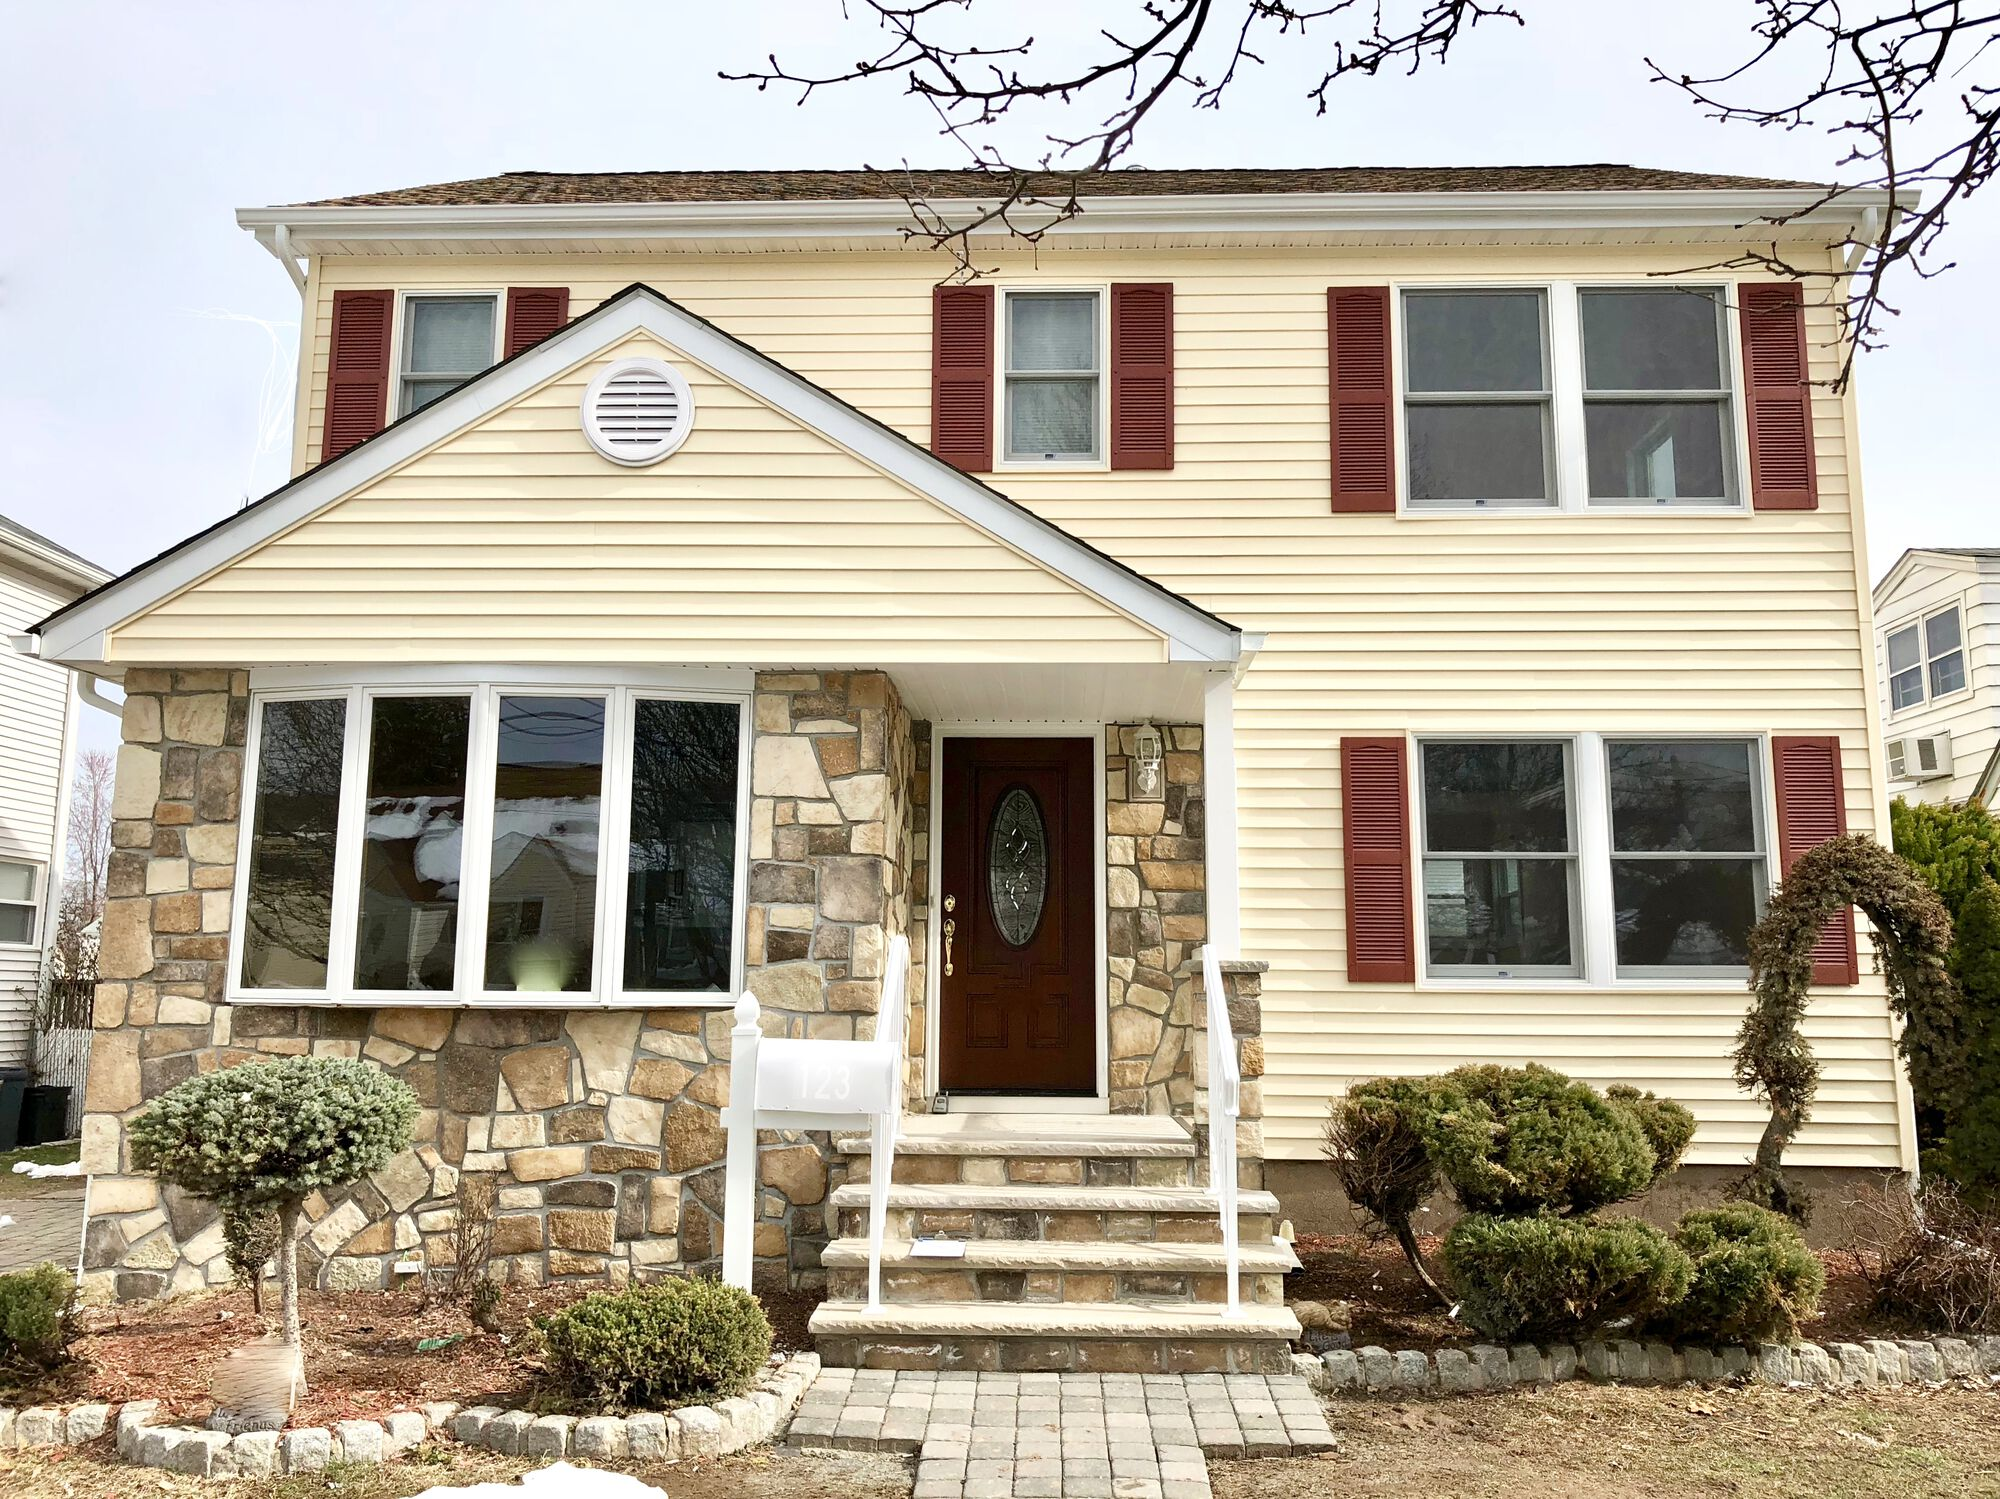 Add-a-Level Addition with Alside Siding, GAF Roofing, Andersen Windows, Boral Stone Front _ Steps, Timbertech Deck in Hasbrouck Heights, Bergen County NJ